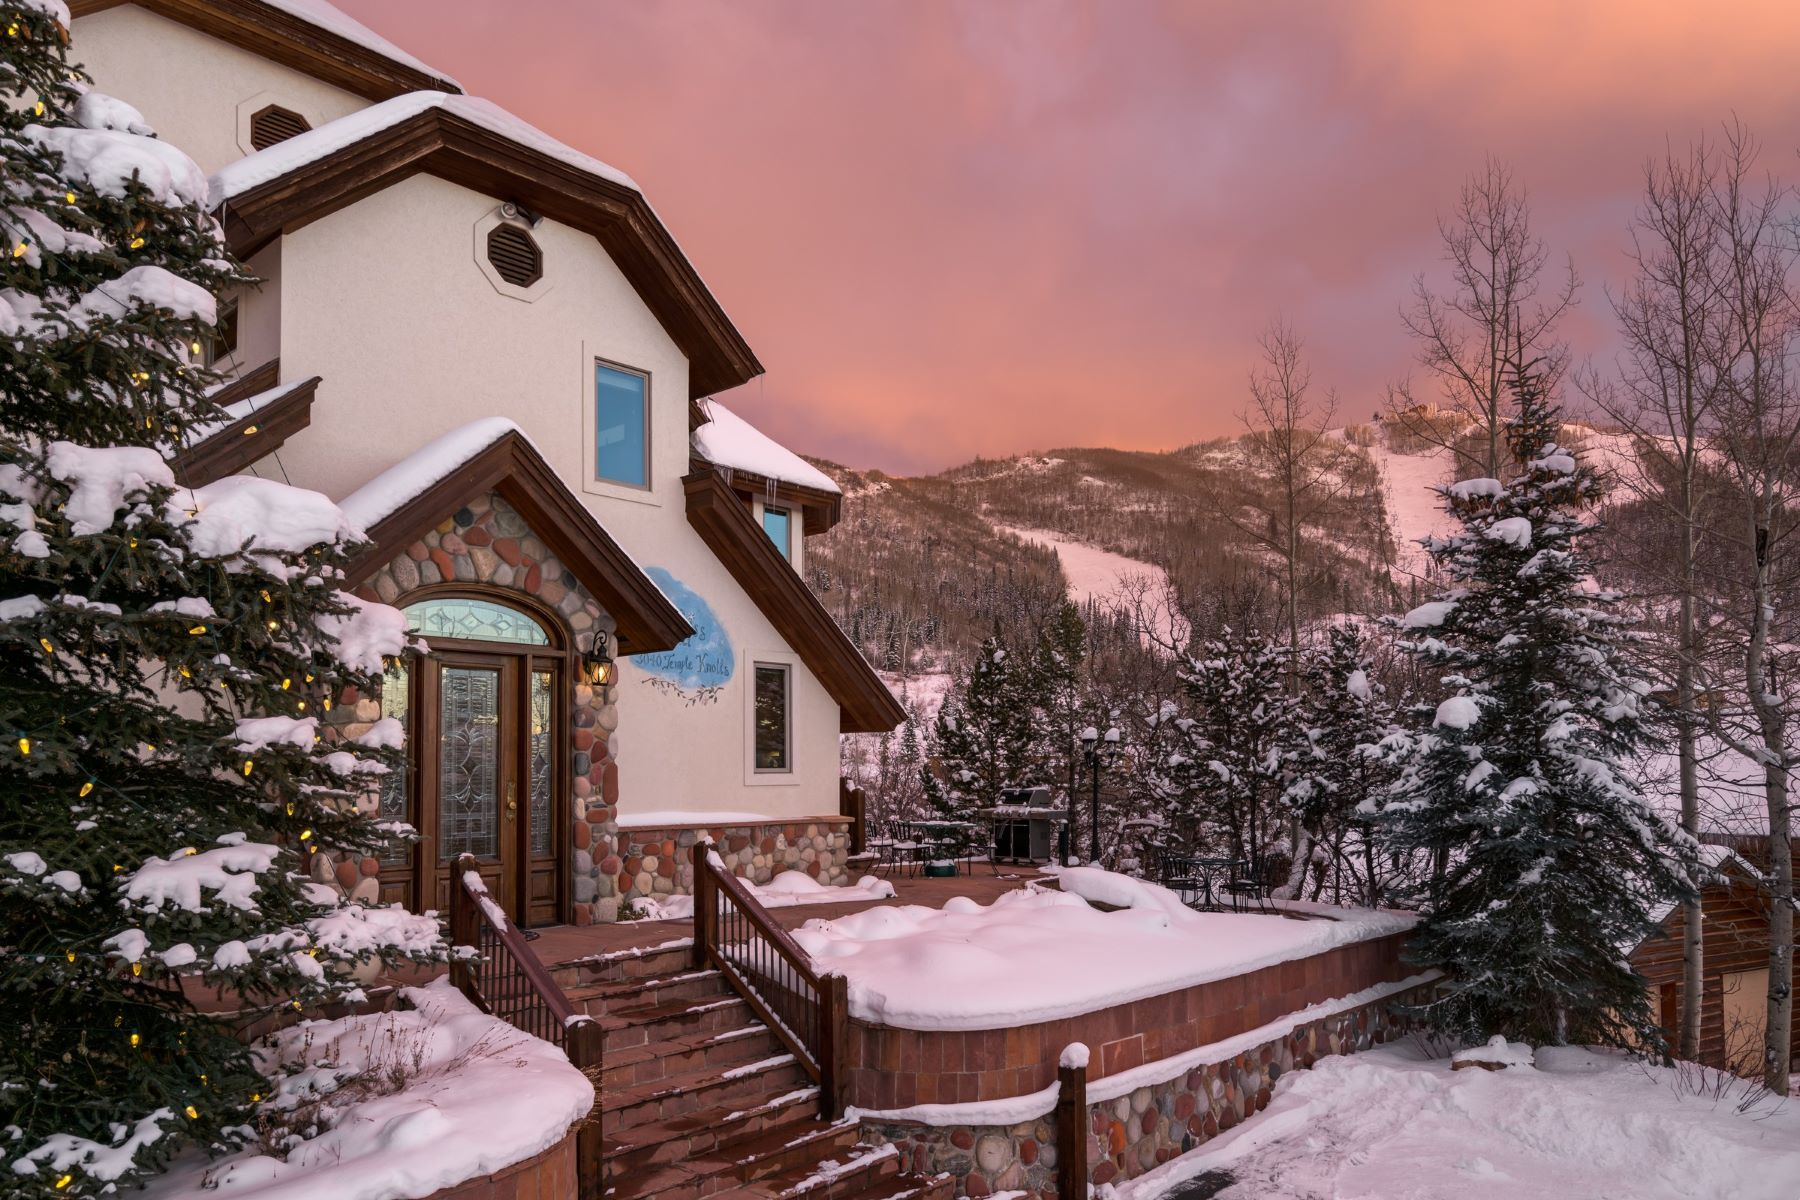 Single Family Home for Sale at Edelweiss Chalet 3040 Temple Knoll Steamboat Springs, Colorado 80487 United States